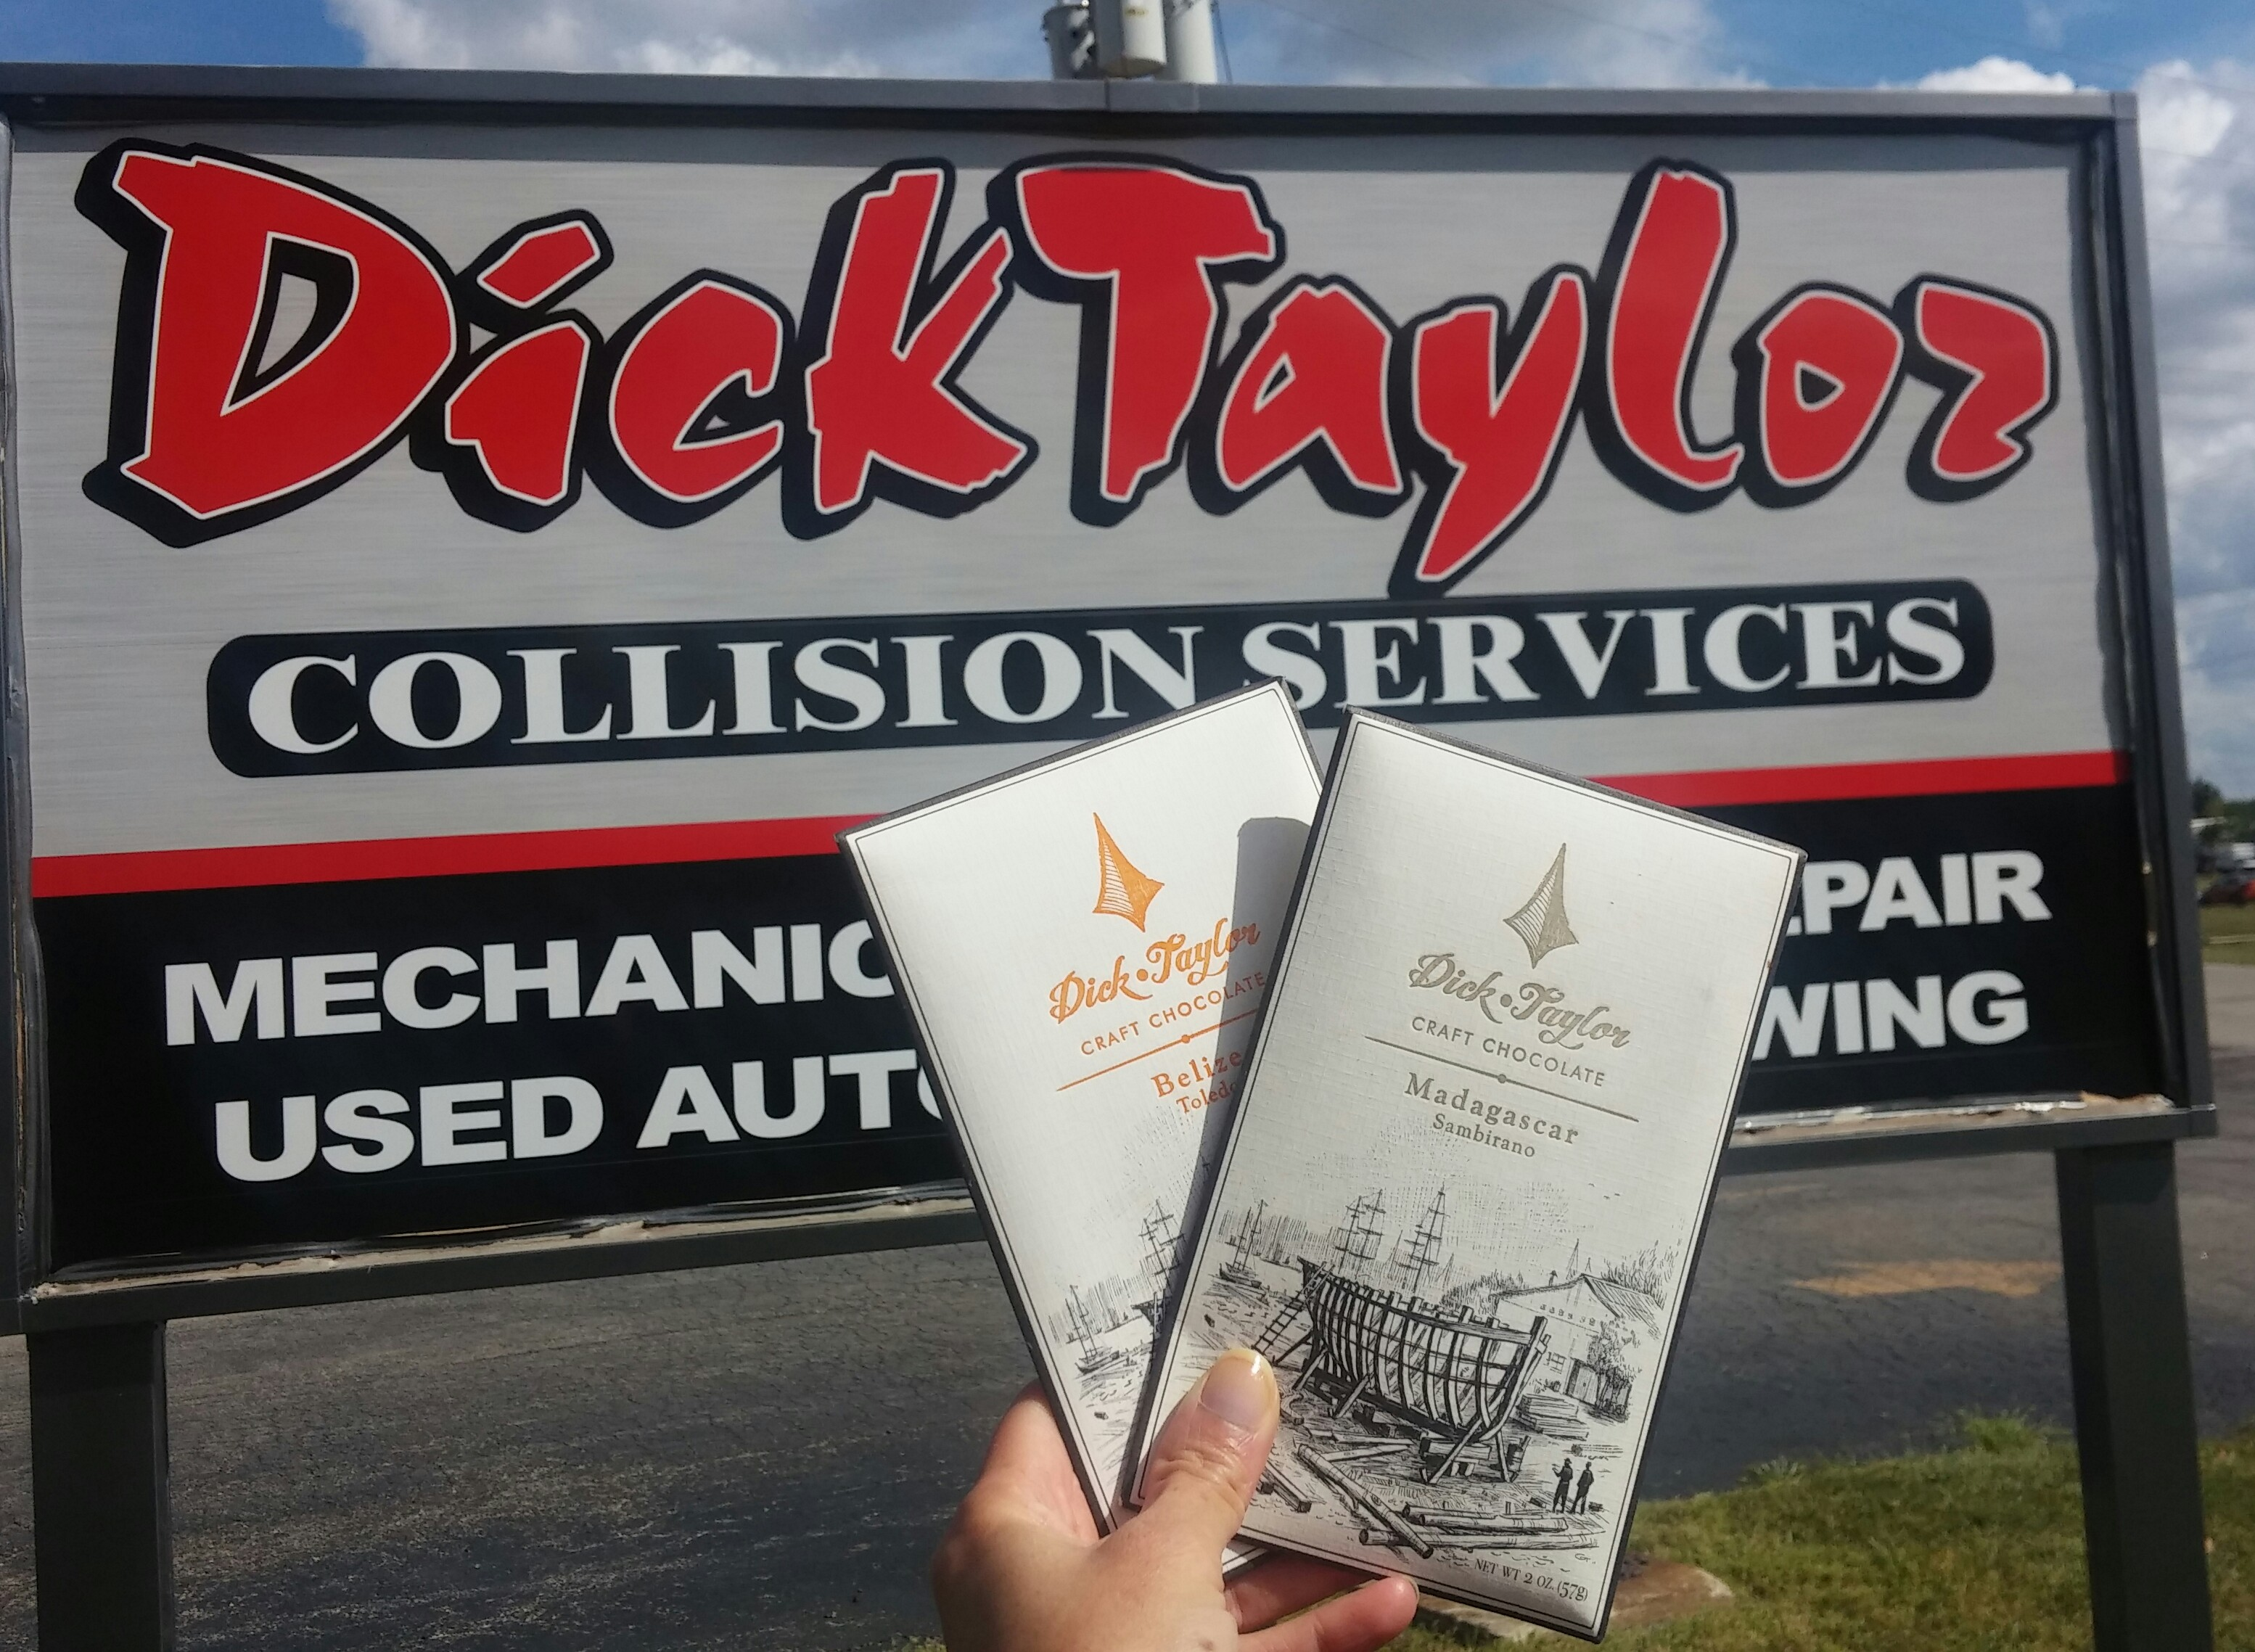 Inside joke: Dick Taylor craft chocolate from California meets Dick Taylor Collision Services of Illinois